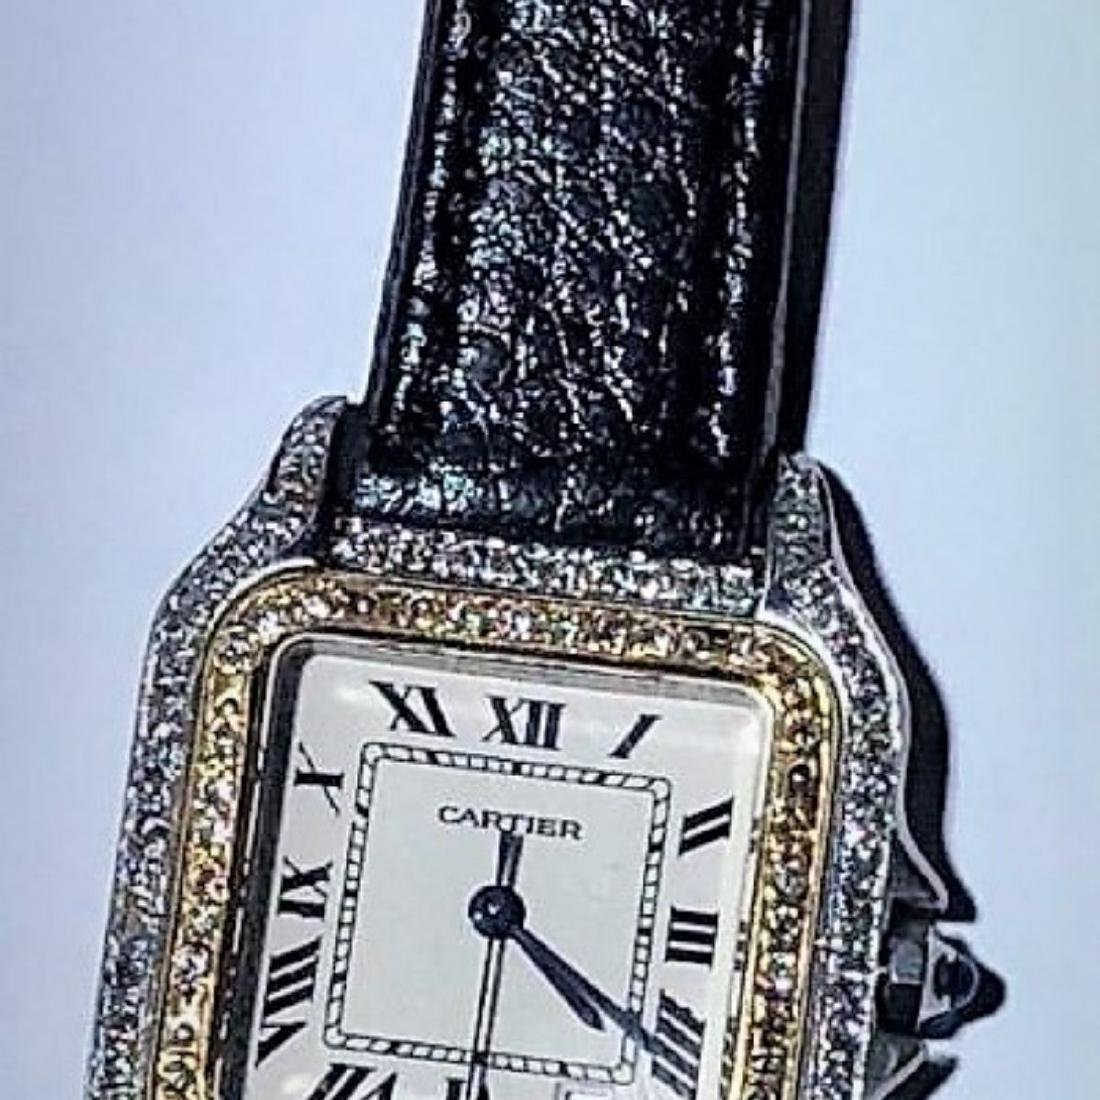 SS PANTHERE UNISEX TWO-TONE MENS MIDSIZE DIAMONDS 18K - 10